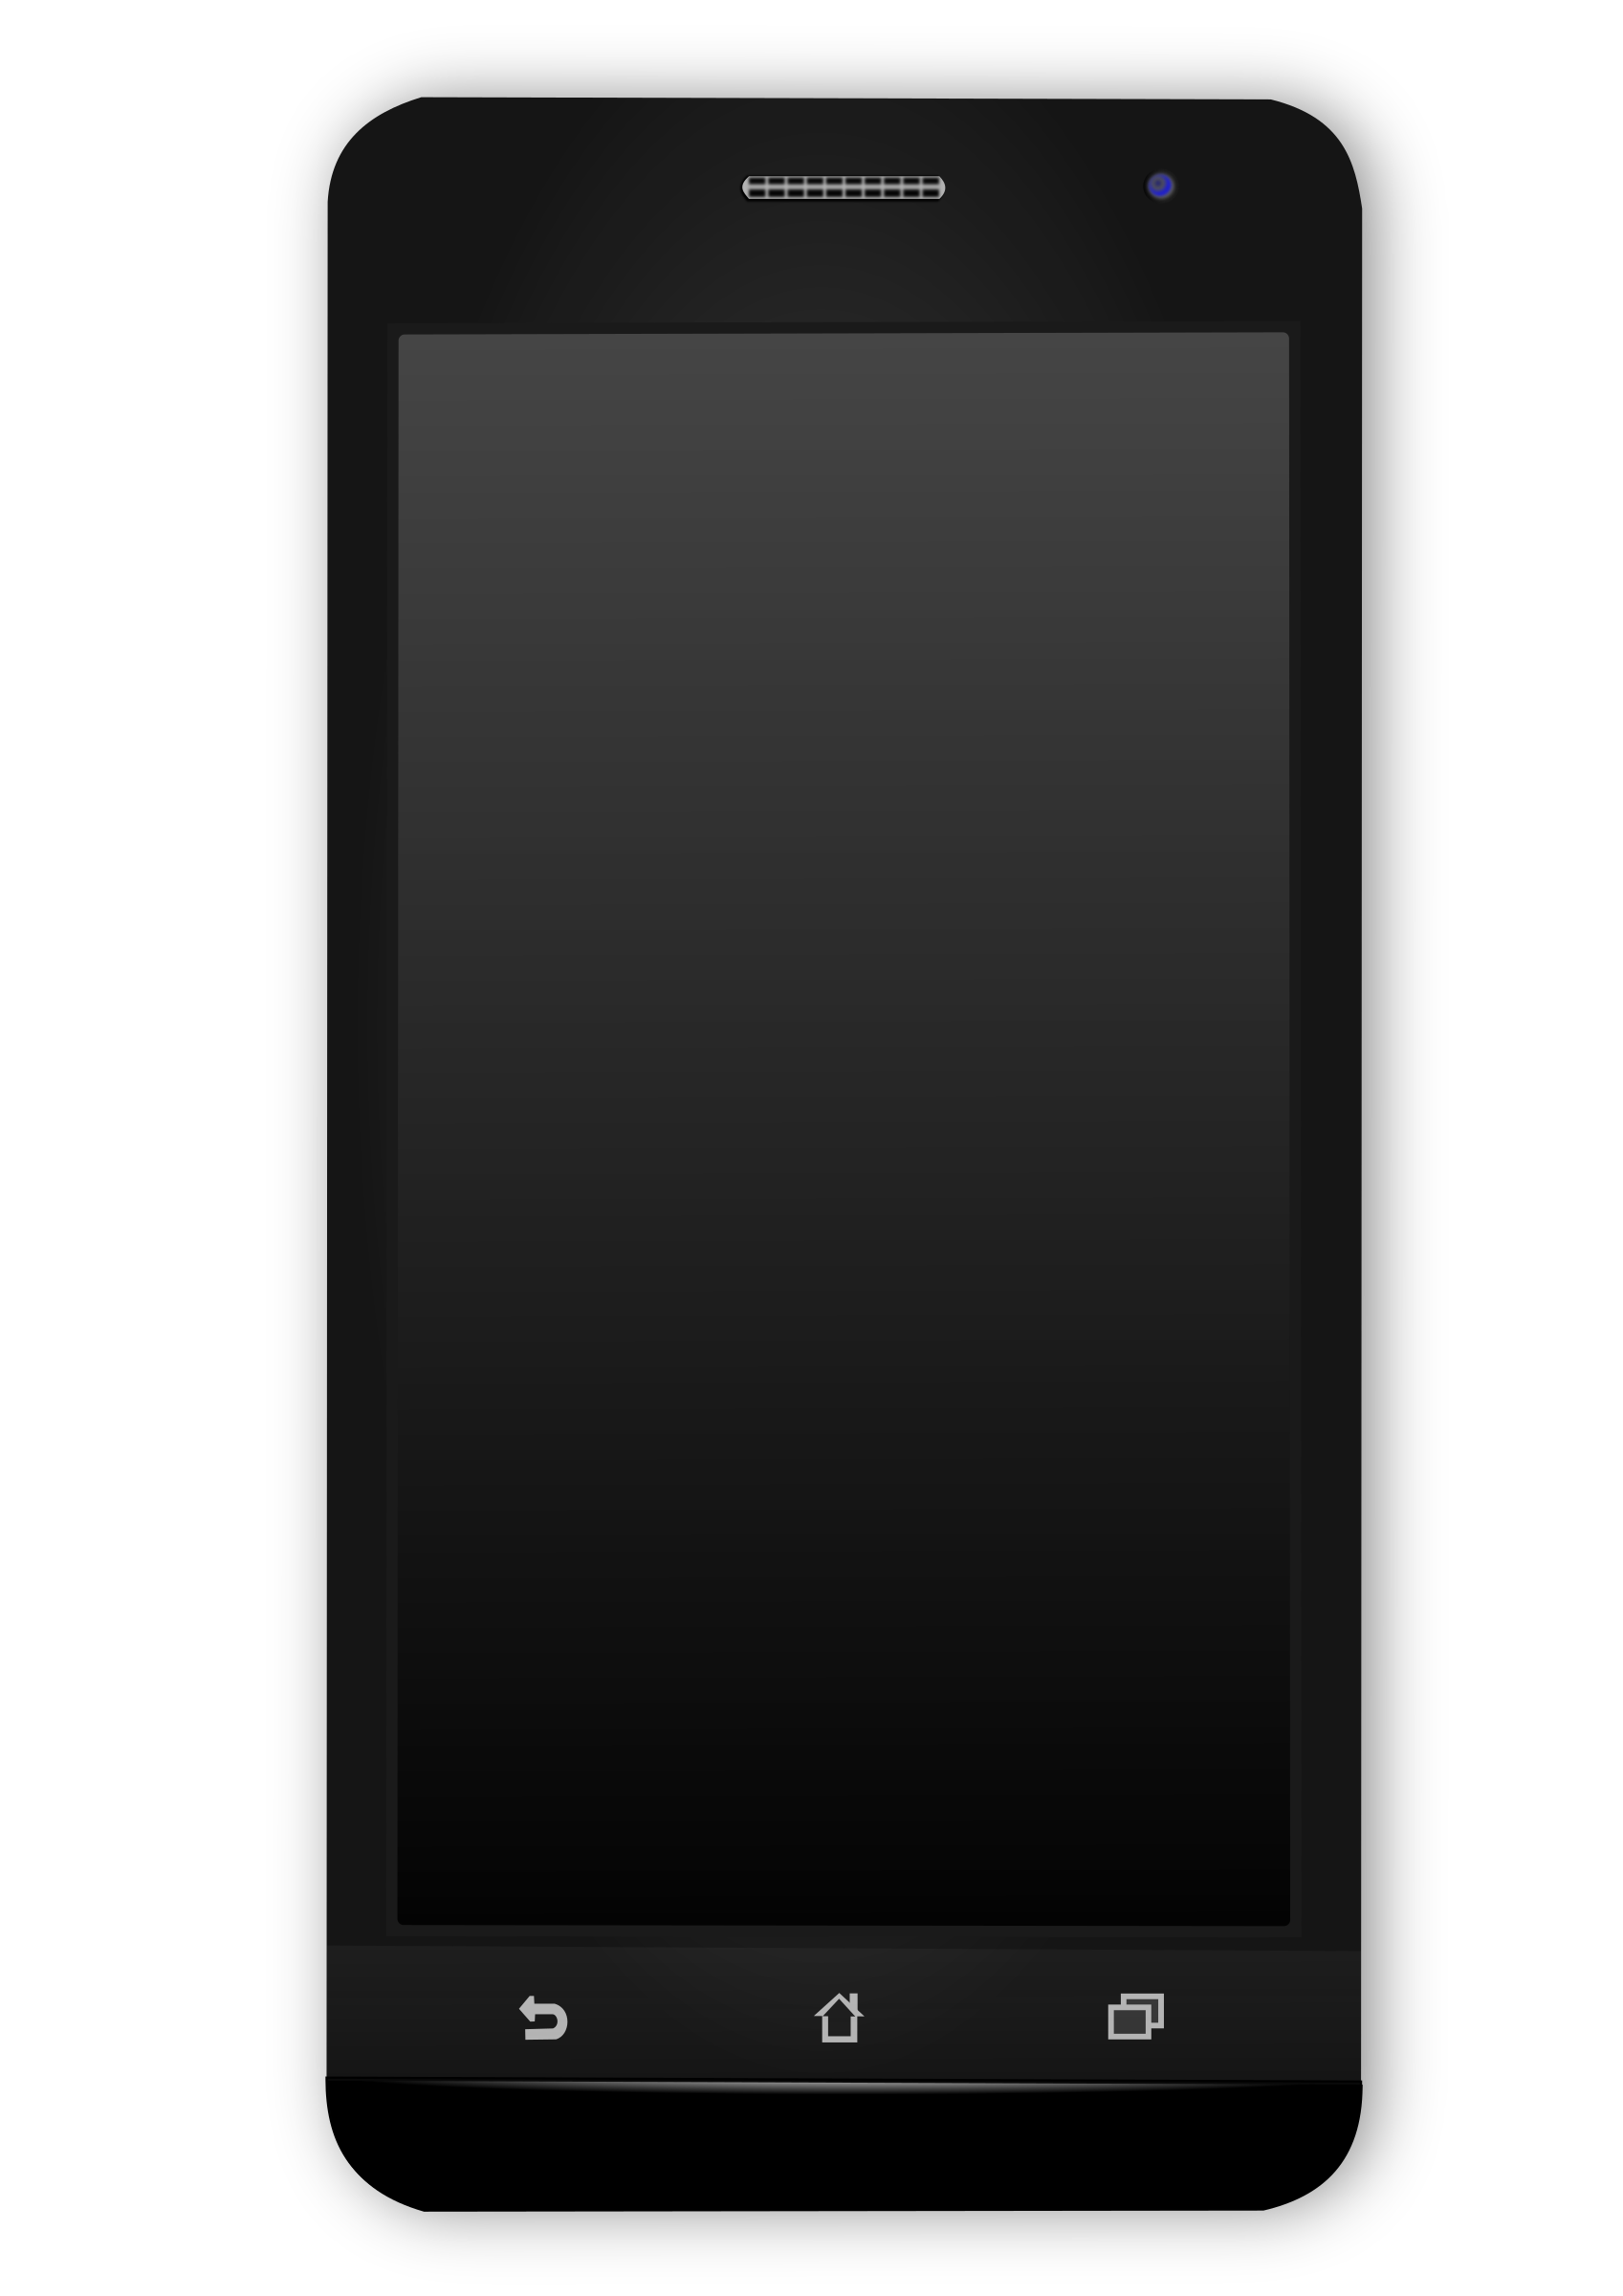 Black android phone icons. Website clipart mobile